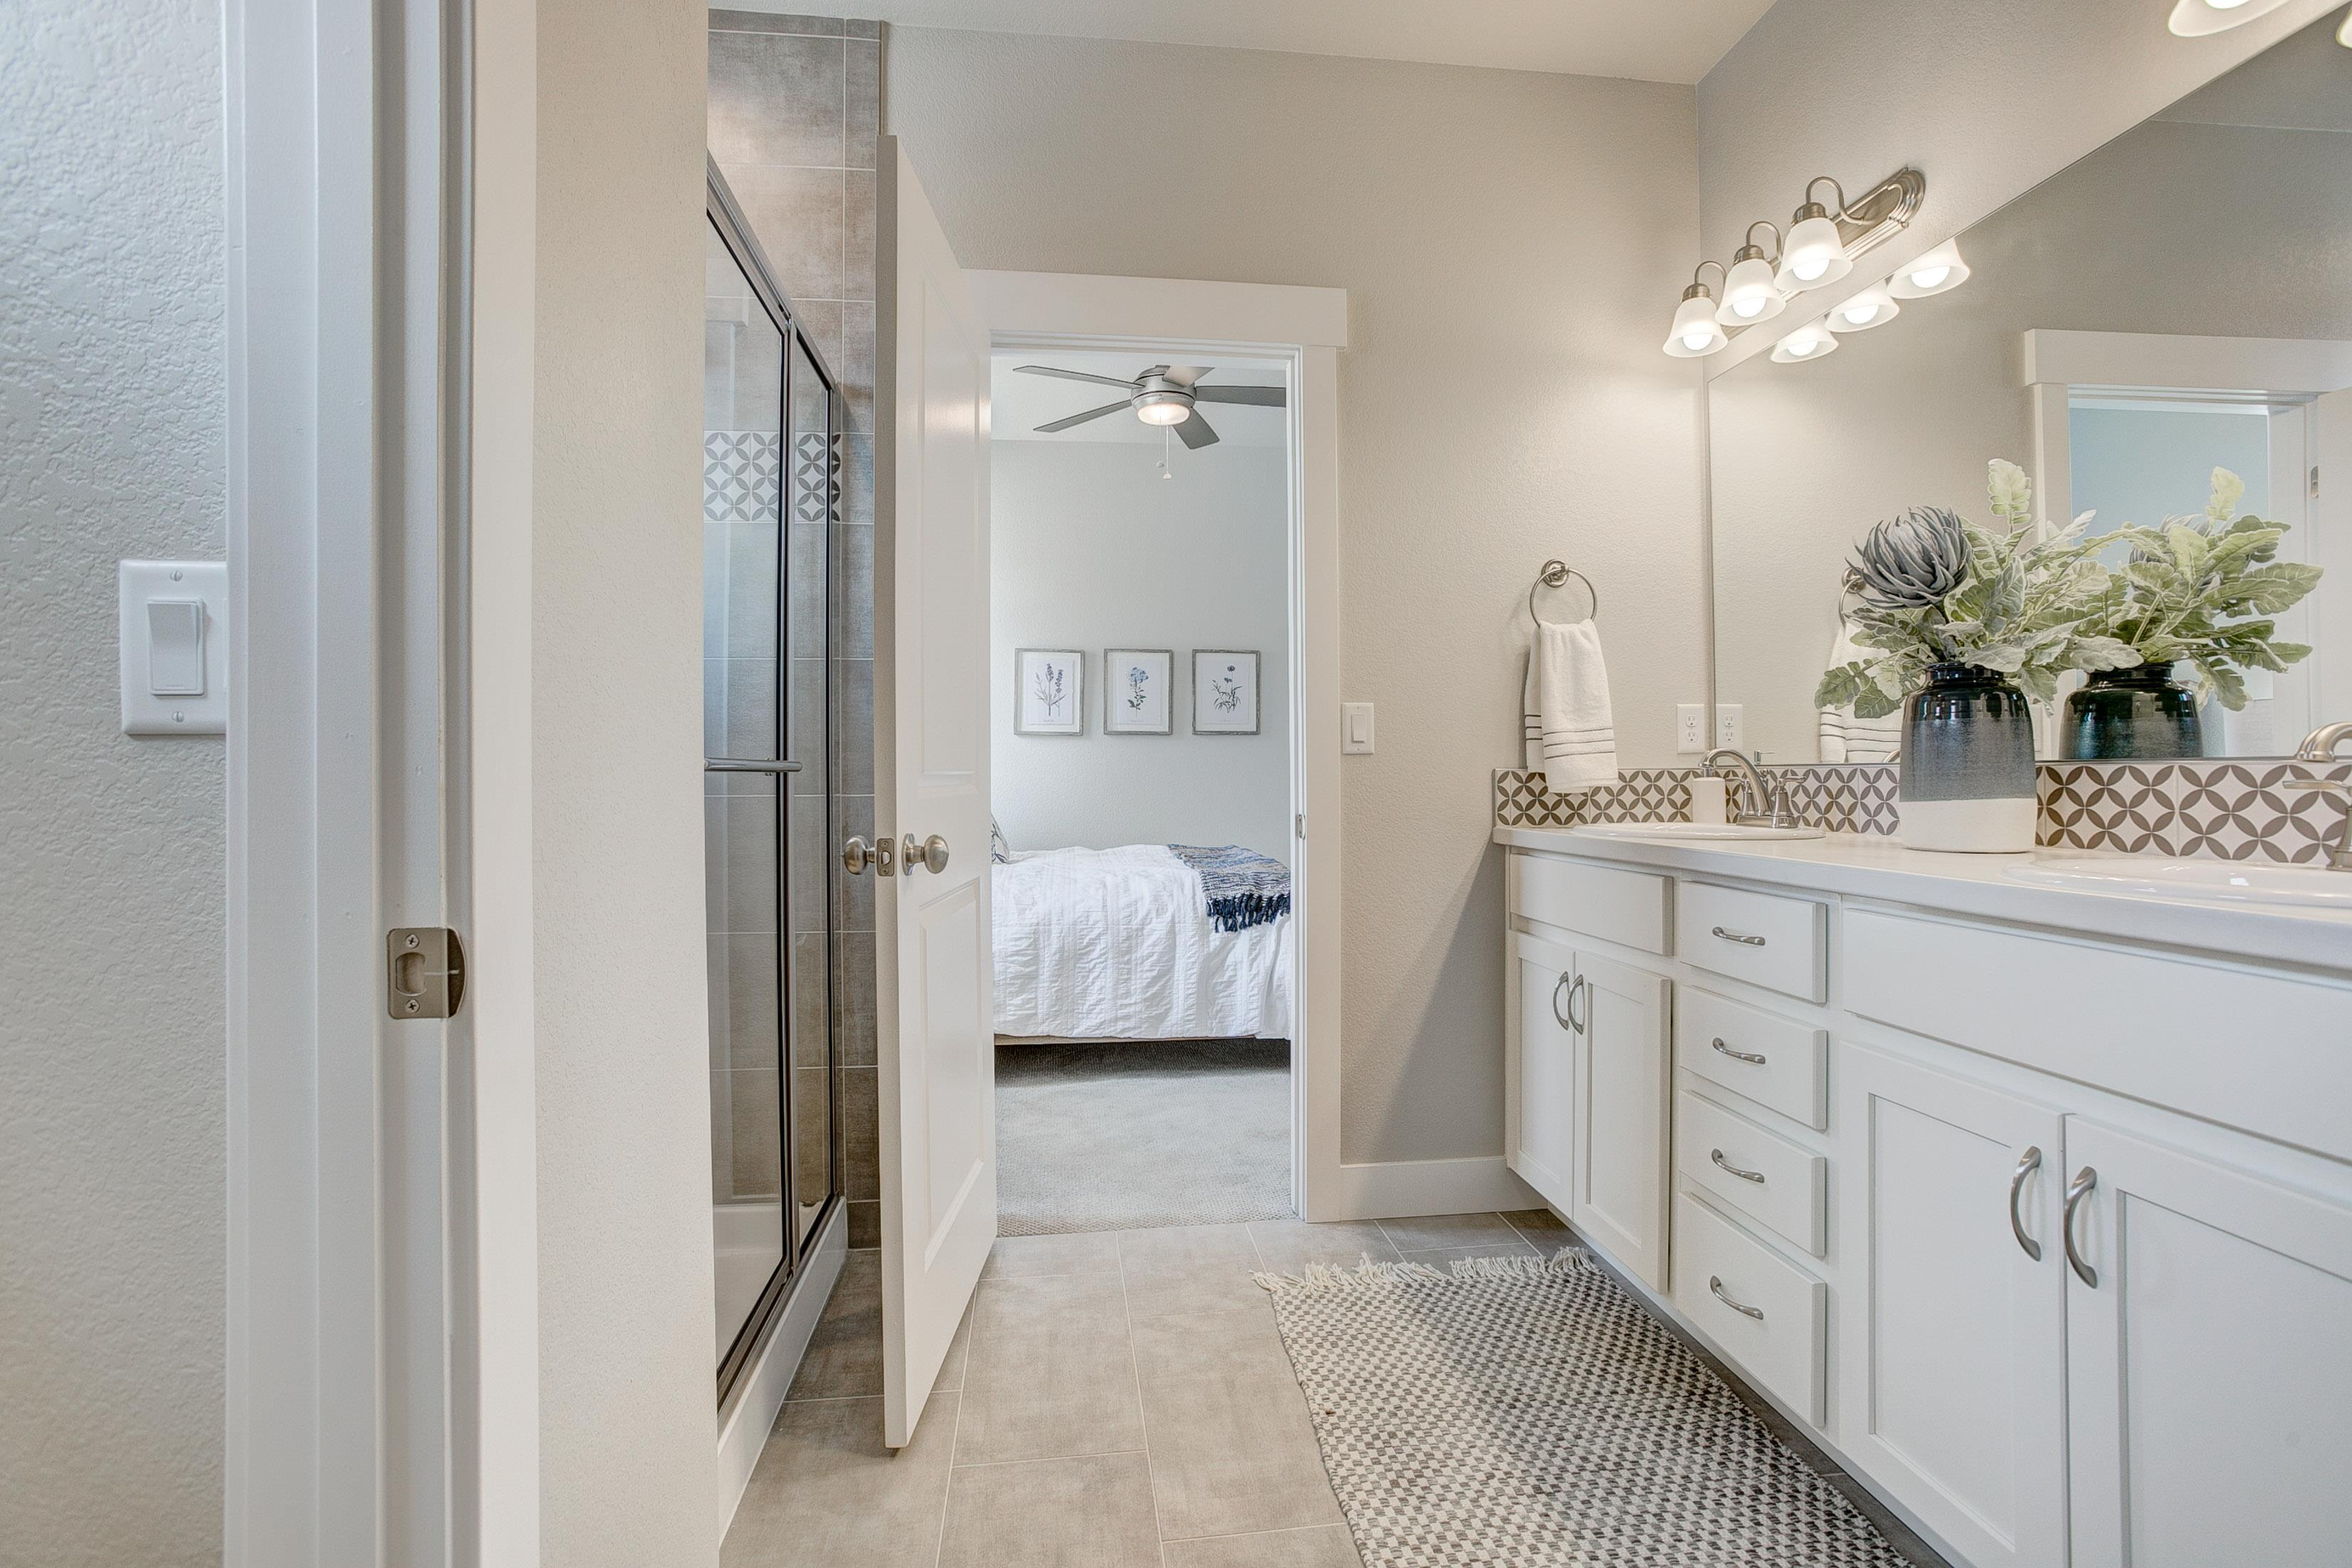 Bathroom featured in the Addison By Landmark Homes  in Fort Collins-Loveland, CO